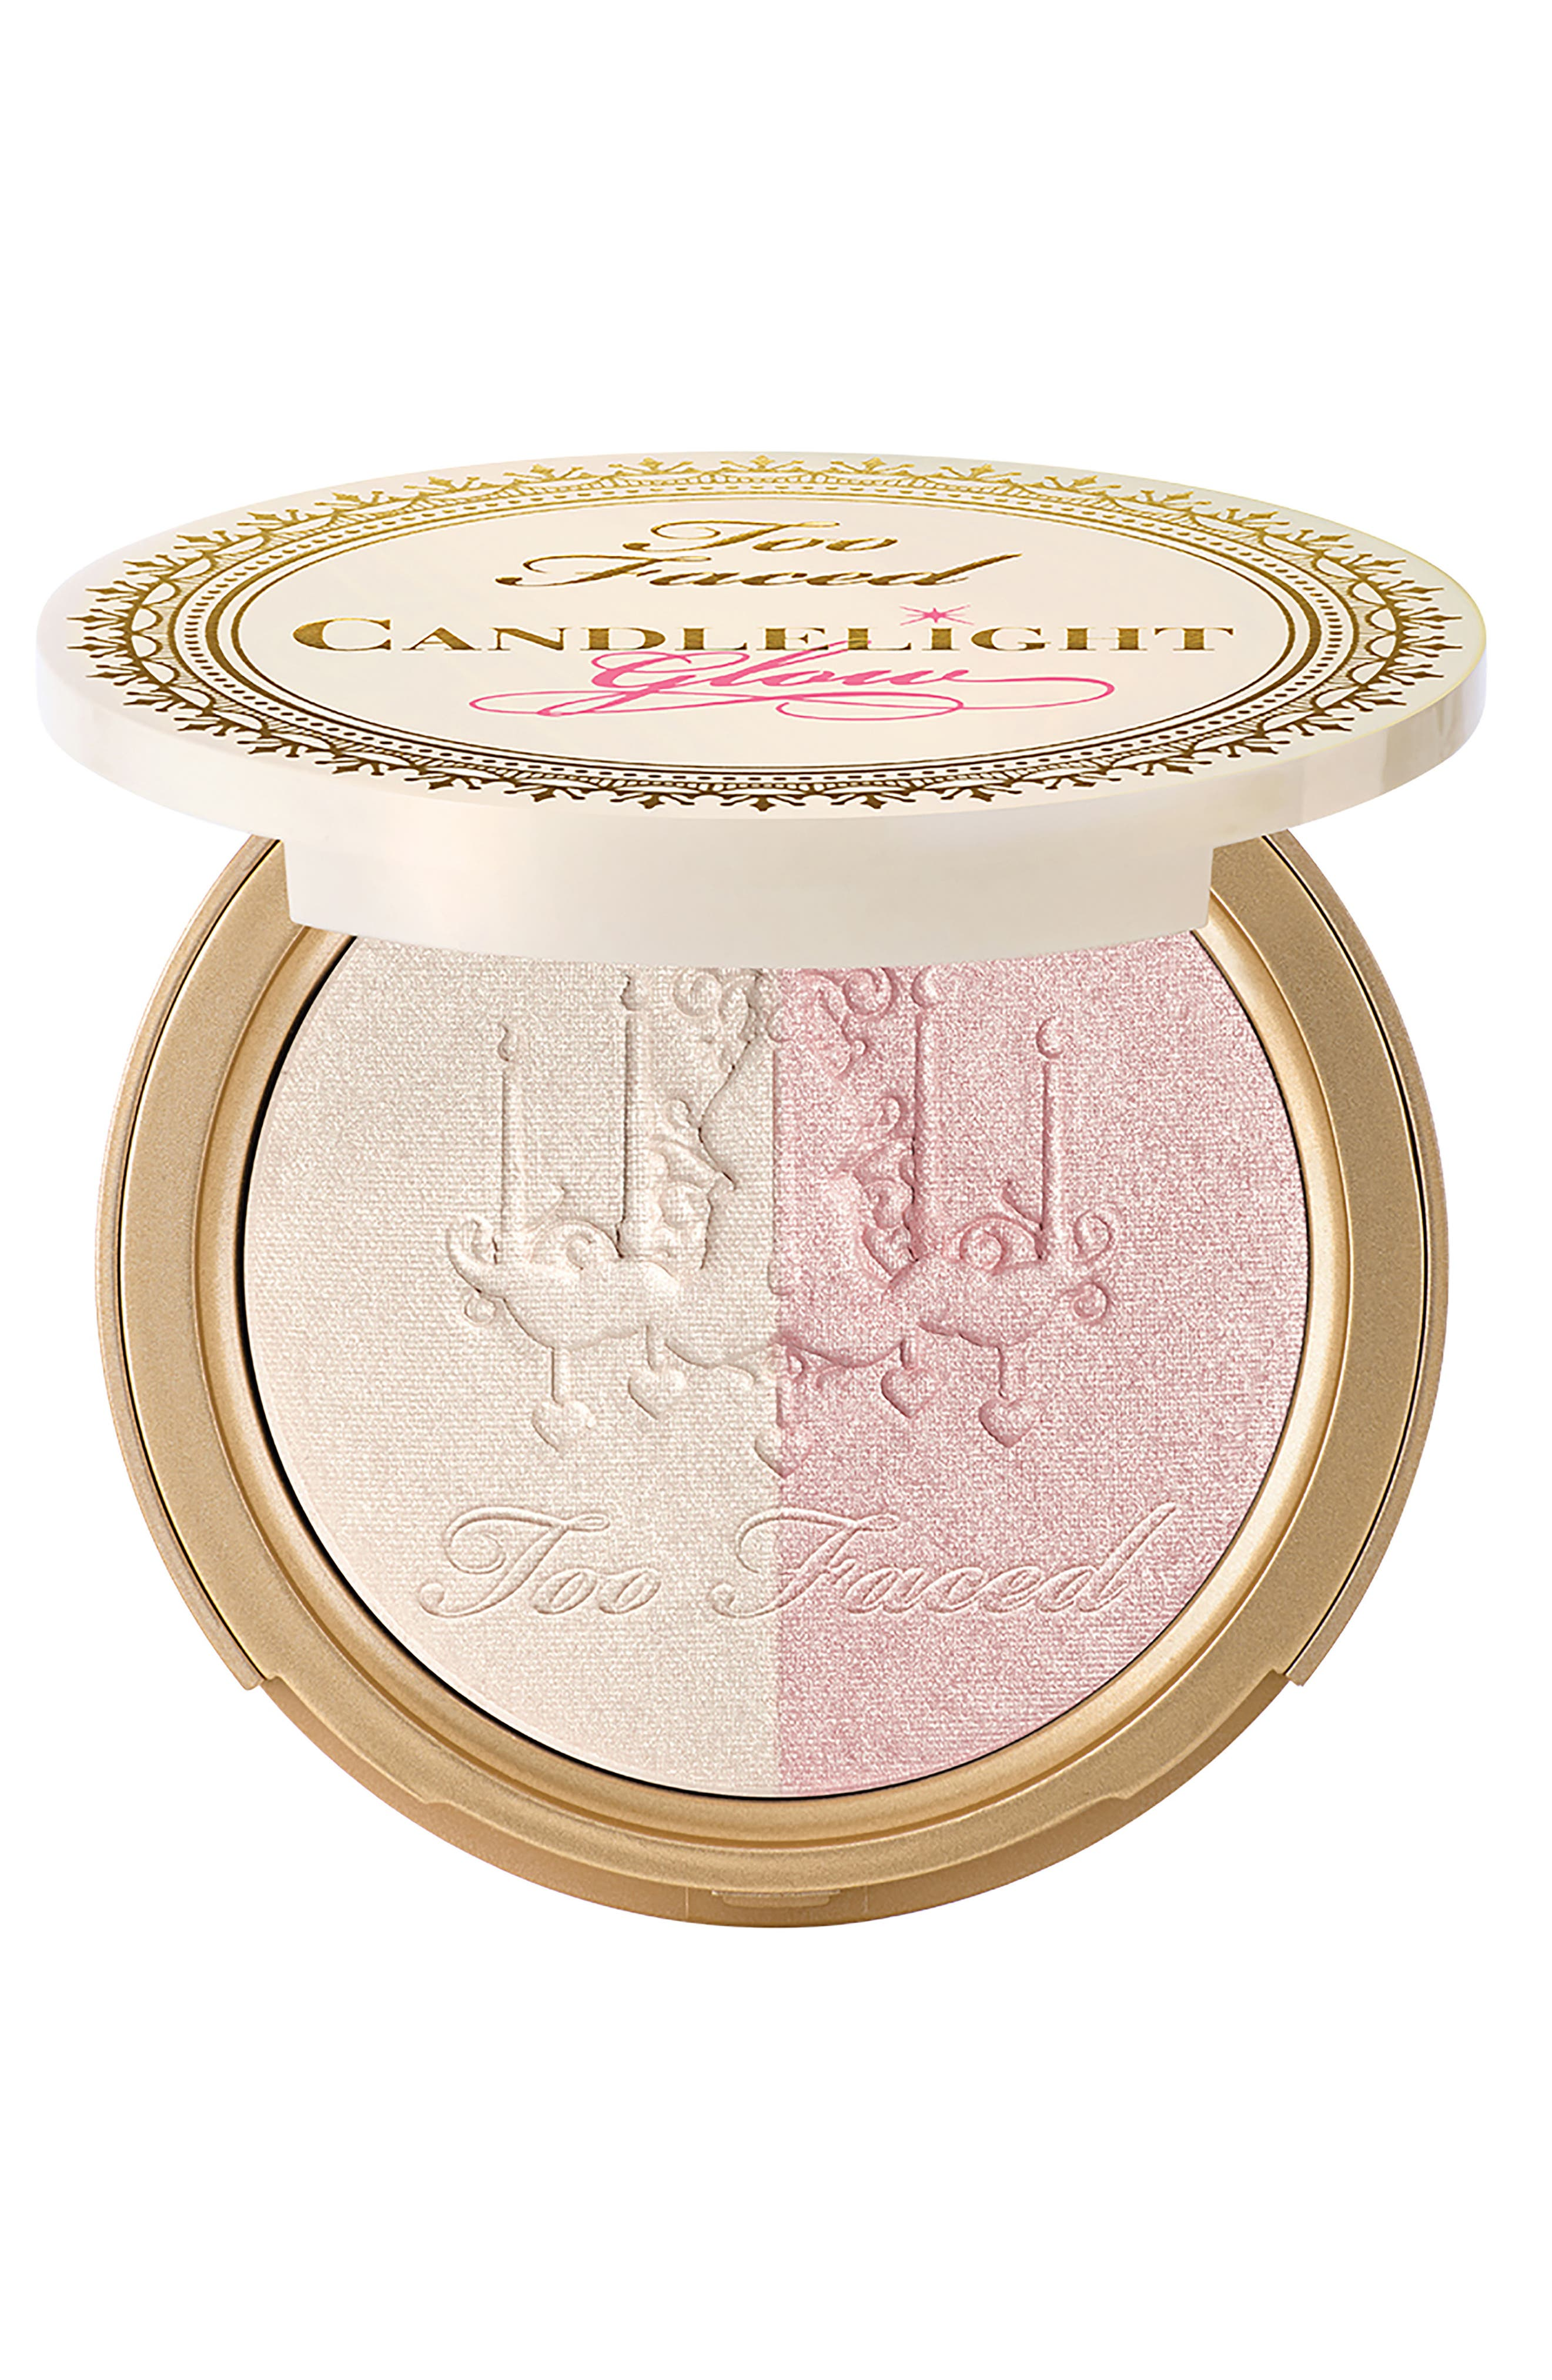 Candlelight Glow Powder,                             Main thumbnail 1, color,                             ROSY GLOW